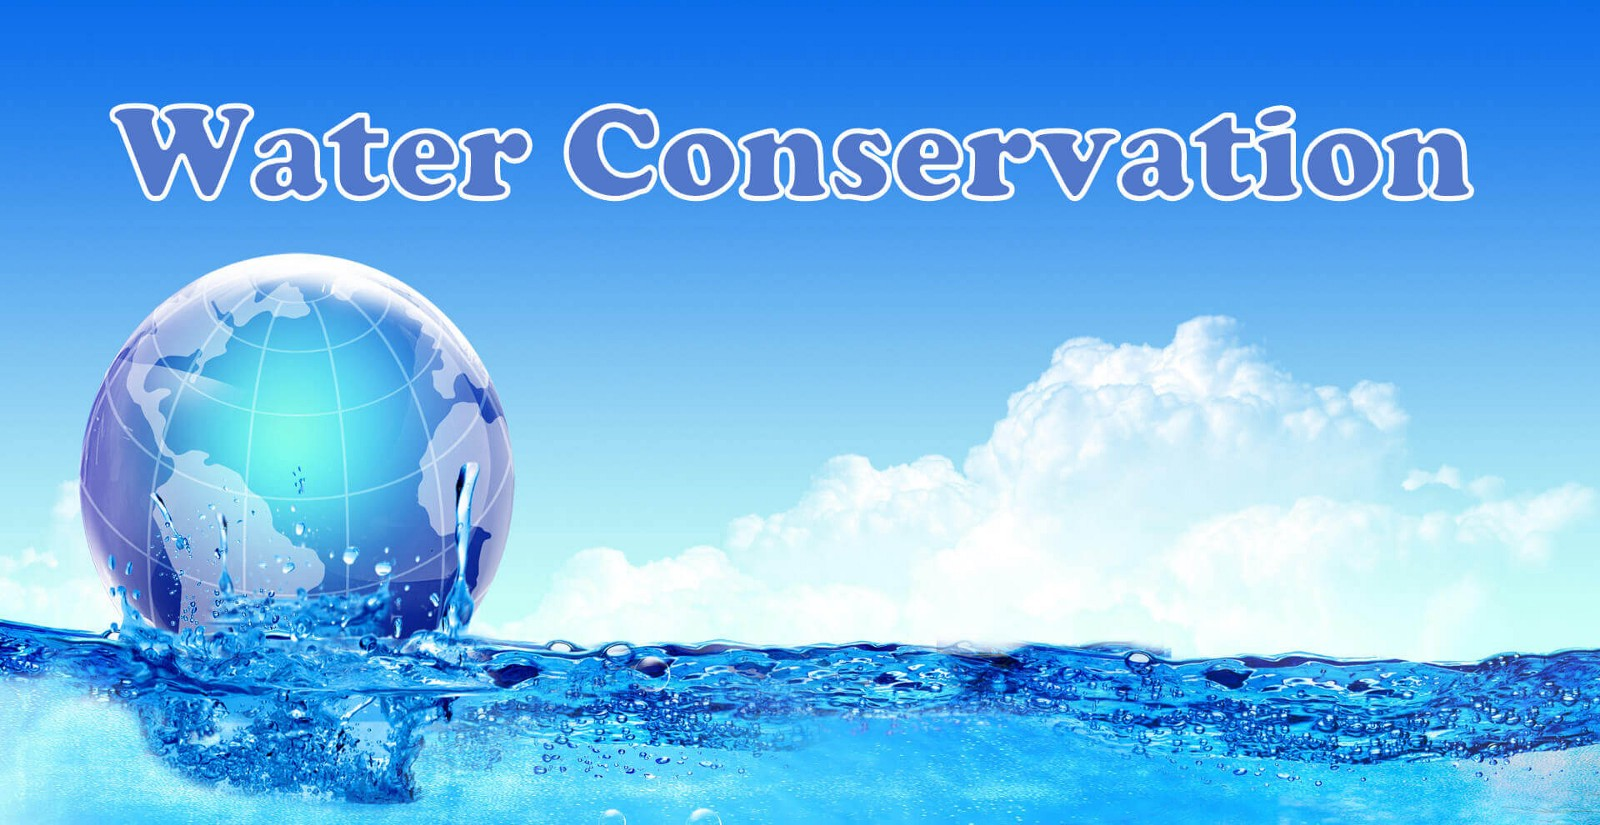 Essays About English Since Our Lives Are Altogether Reliant On Water Its Our Obligation To  Consider Water Preservation And Realize That How We Can Serve In This Essays On English Literature also Types Of English Essays Essay On Water Conservation  Johny Basha  Medium Essay Topics For High School English